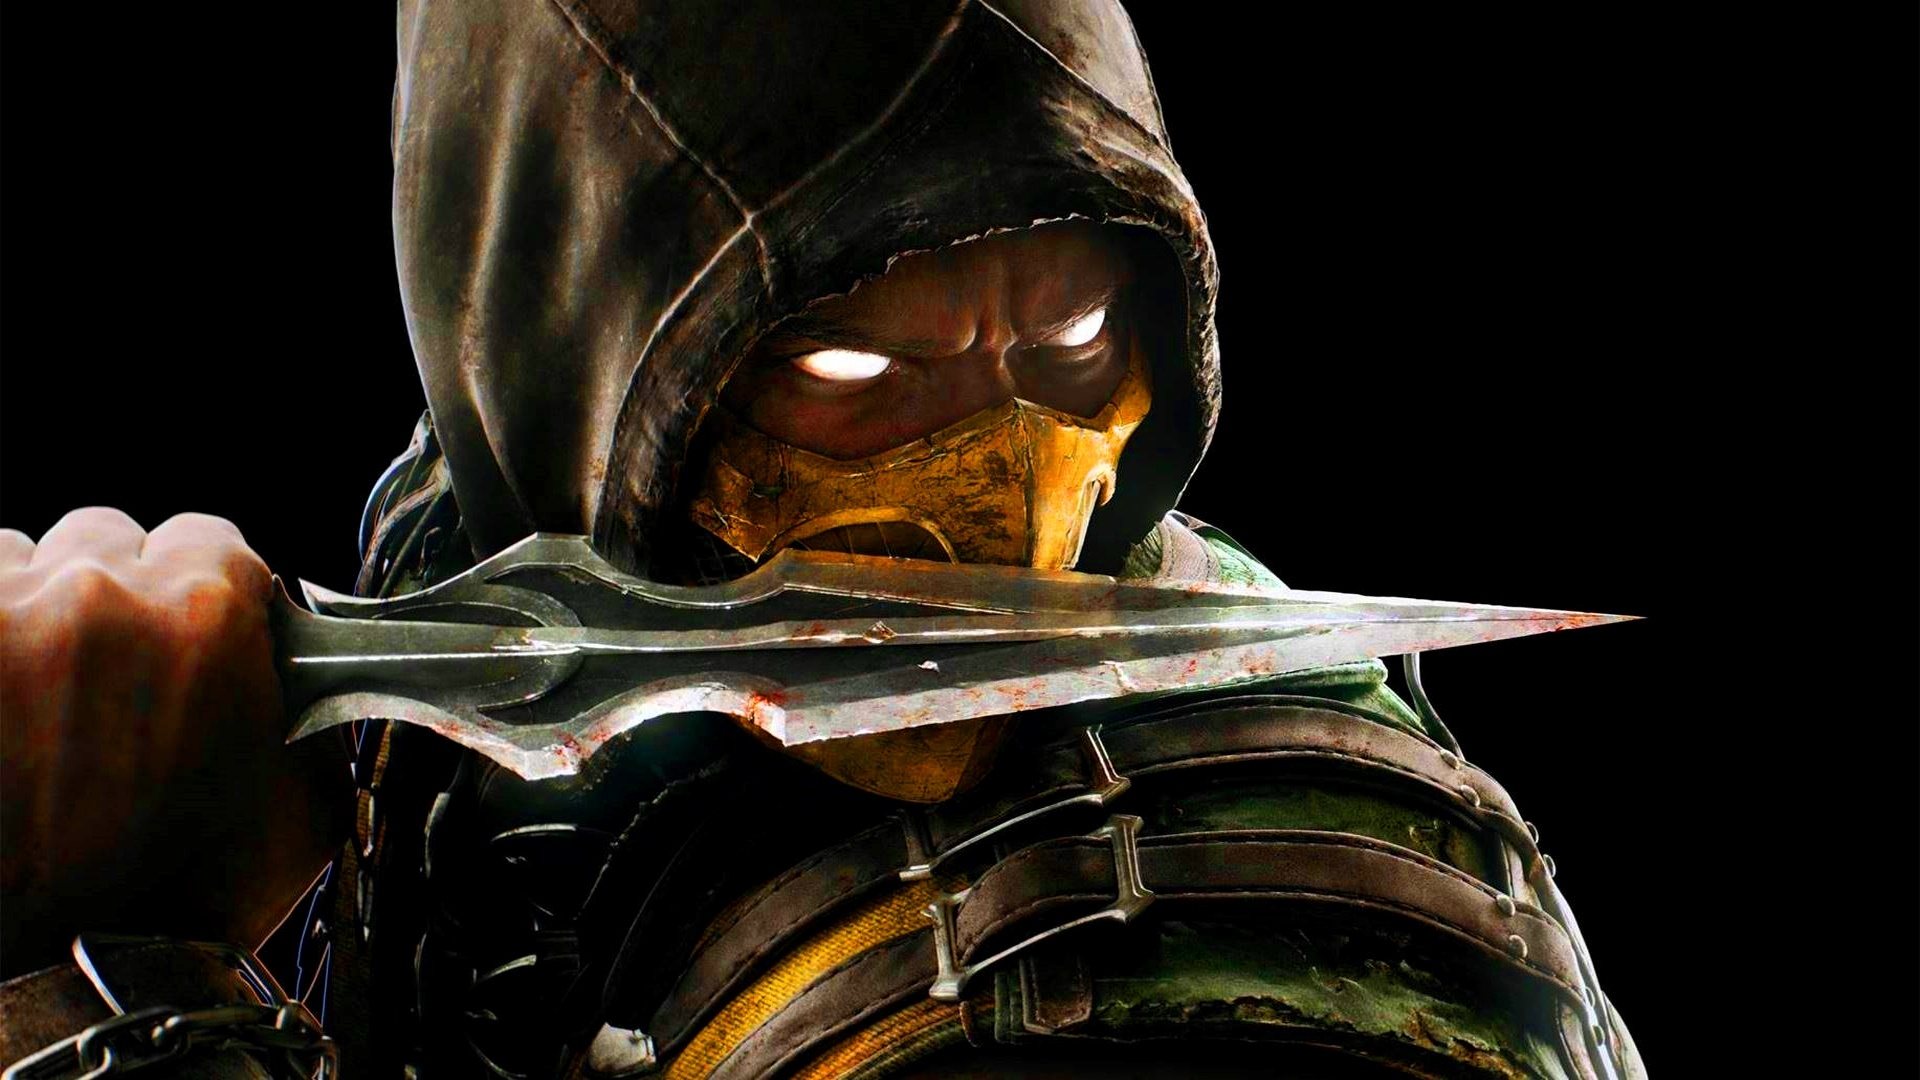 Free Download Scorpion Mortal Kombat Wallpaper Hd 1920x1080 For